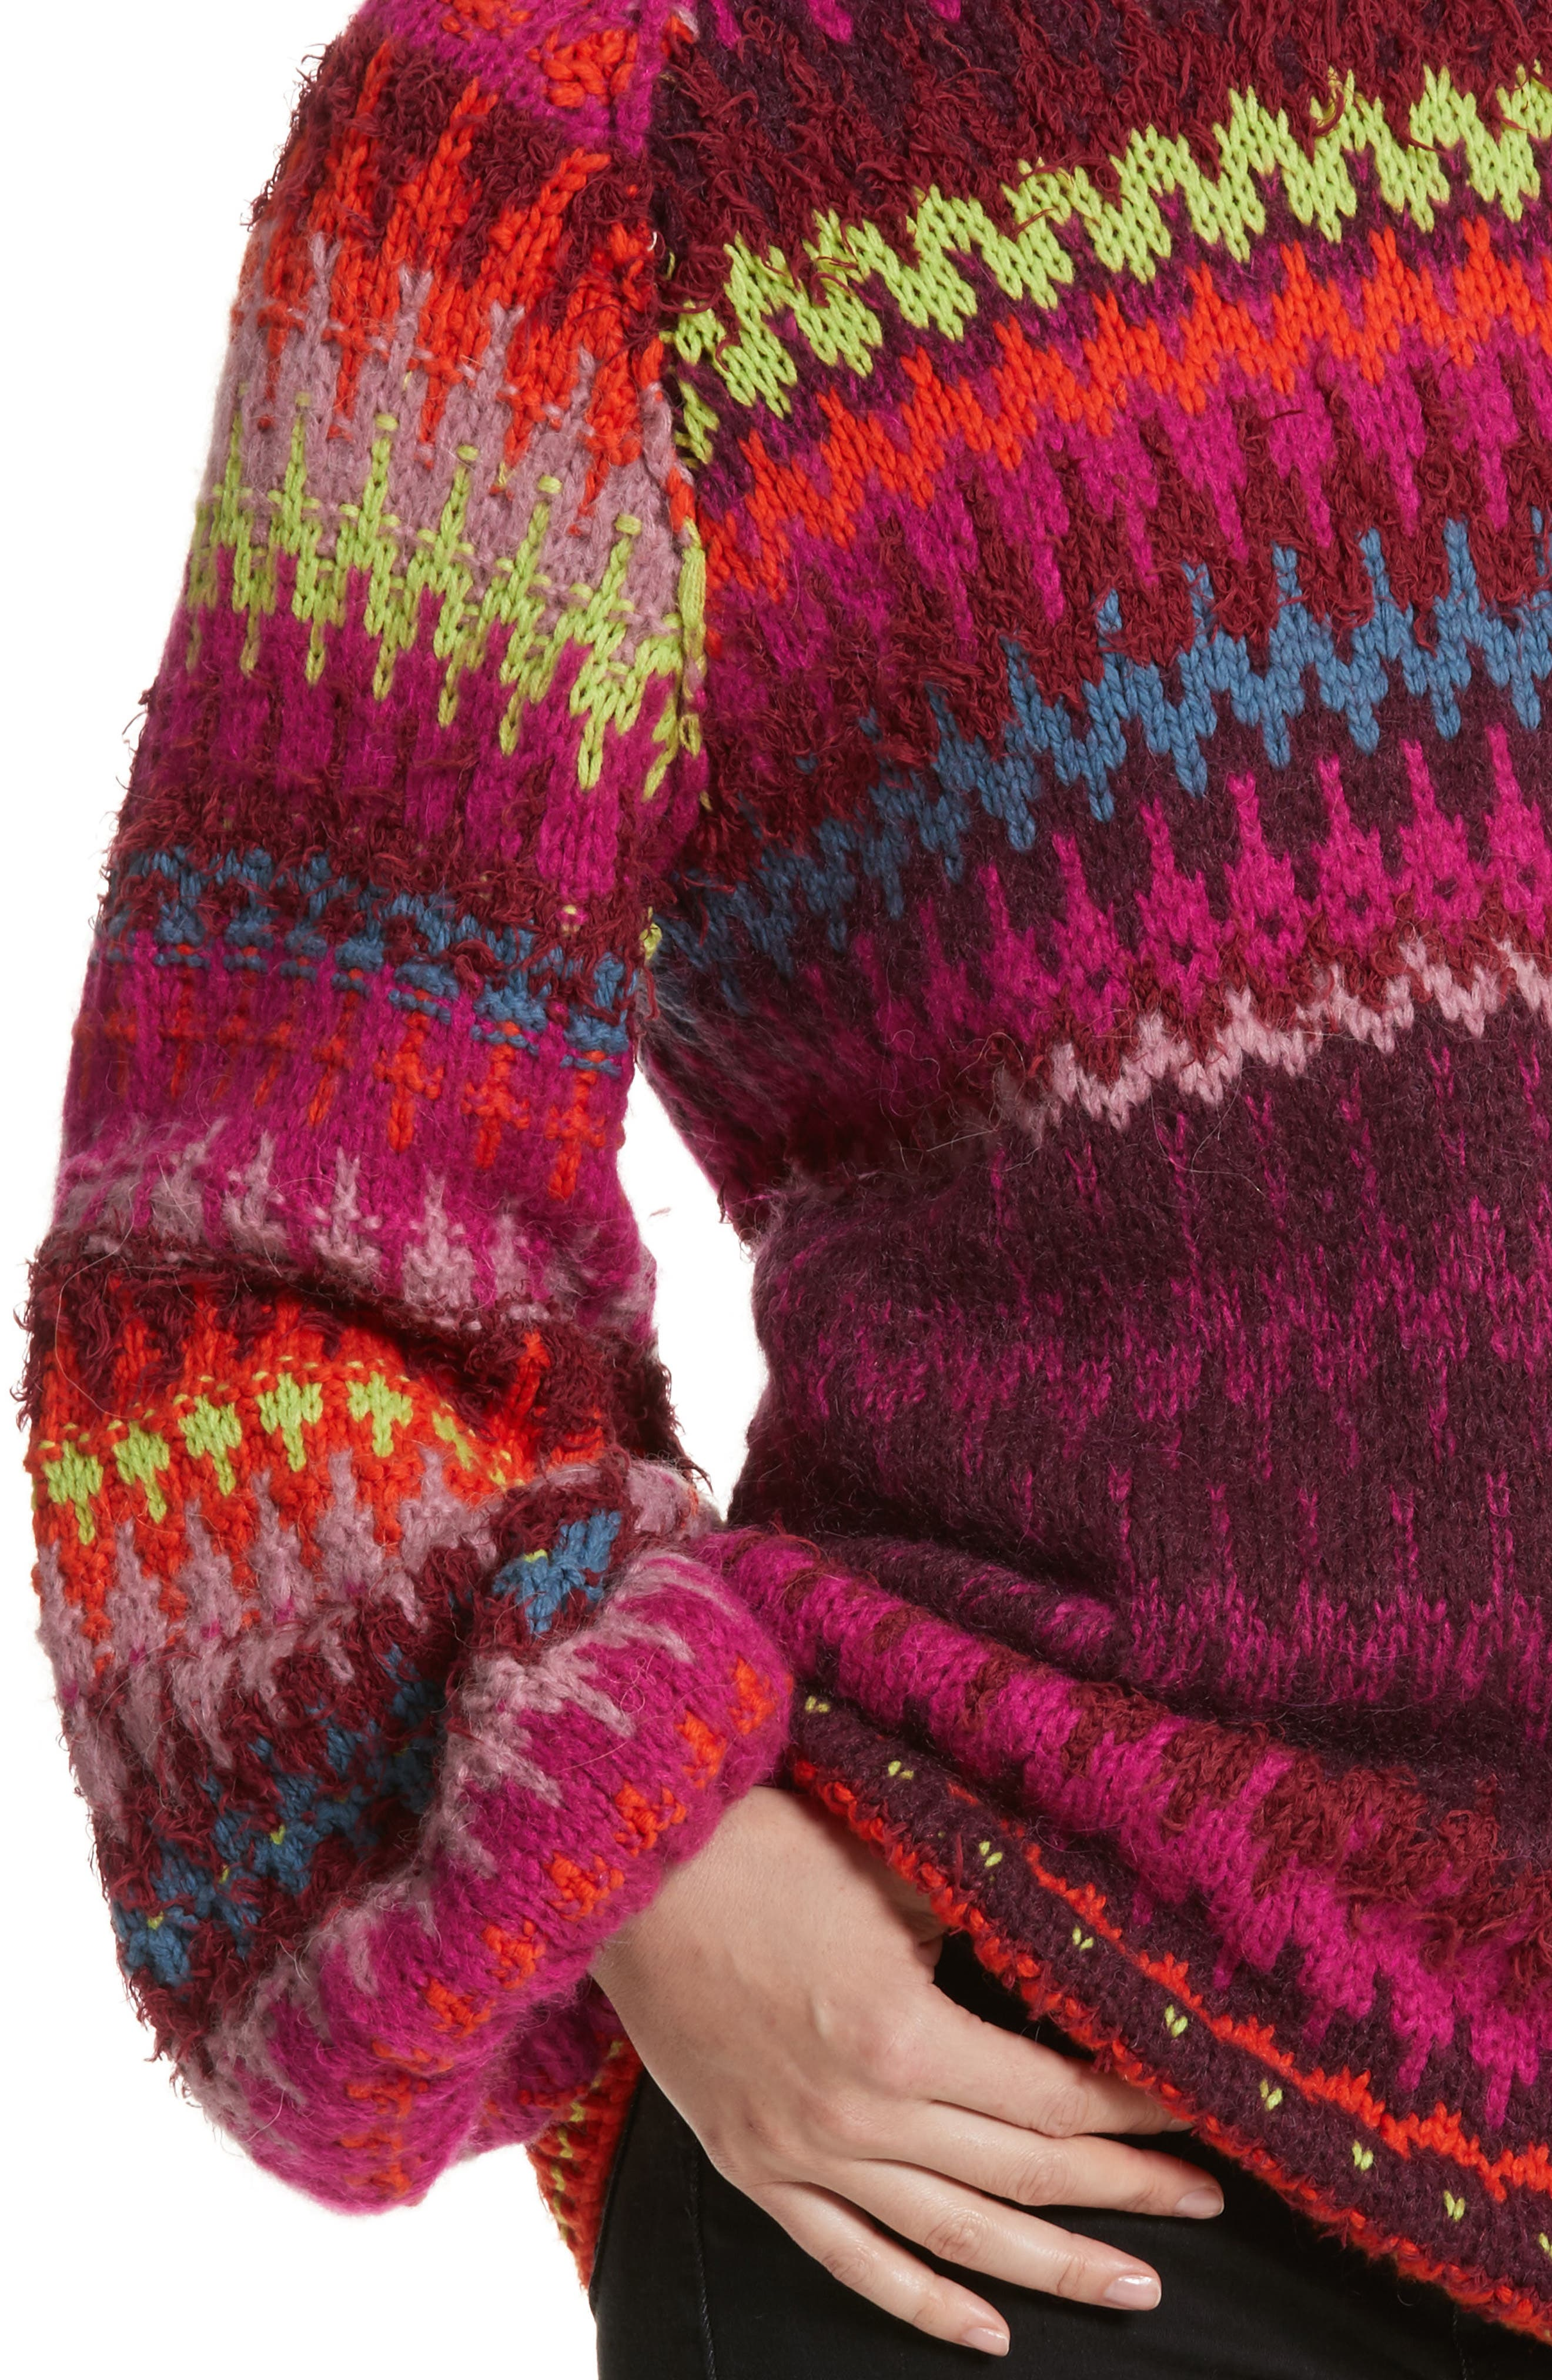 Castles in the Sky Sweater,                             Alternate thumbnail 4, color,                             697